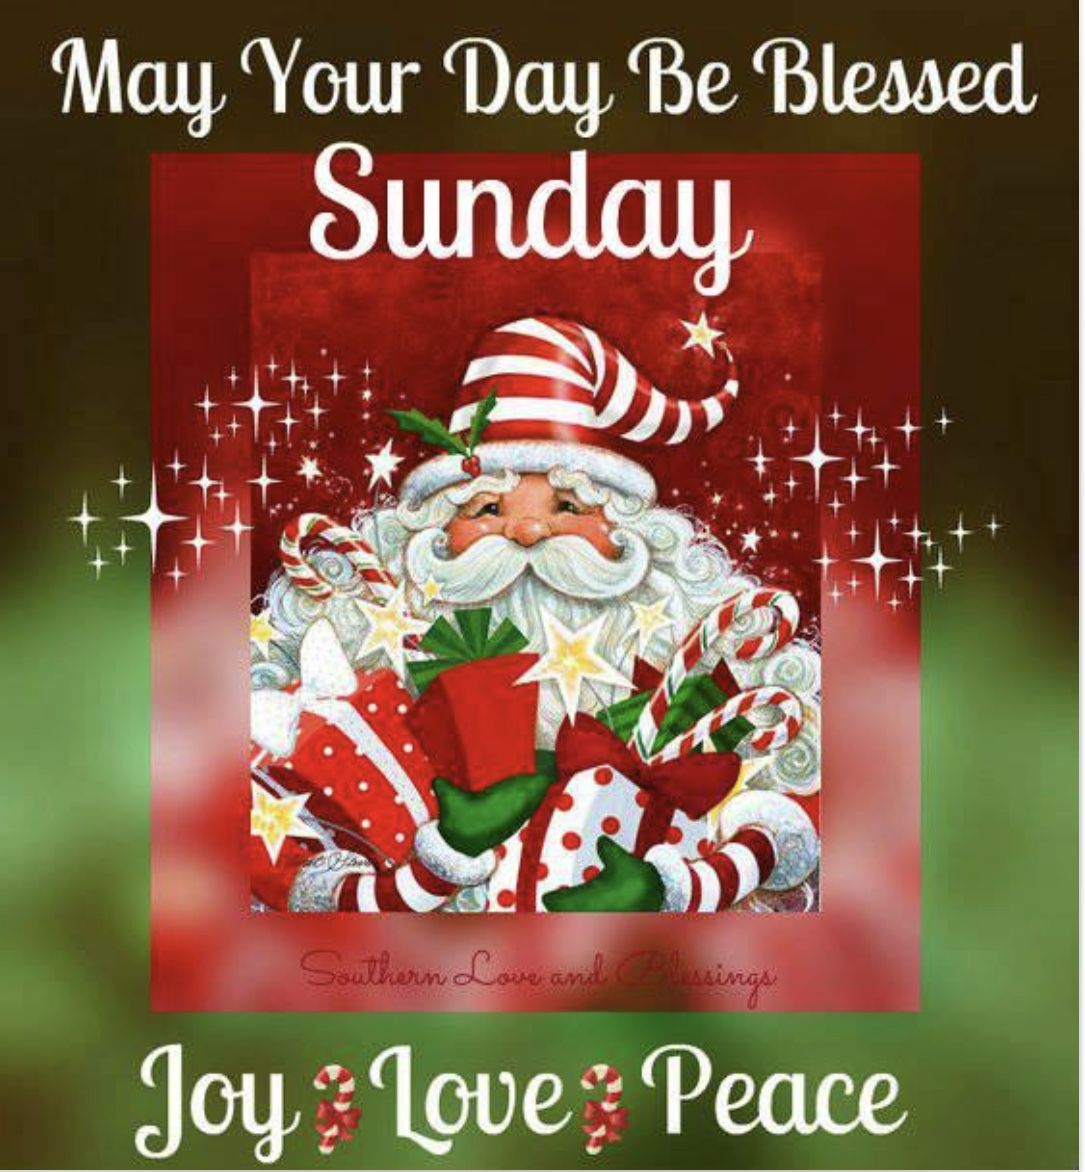 Holiday sunday blessings morning blessings pinterest holiday sunday blessings kristyandbryce Images